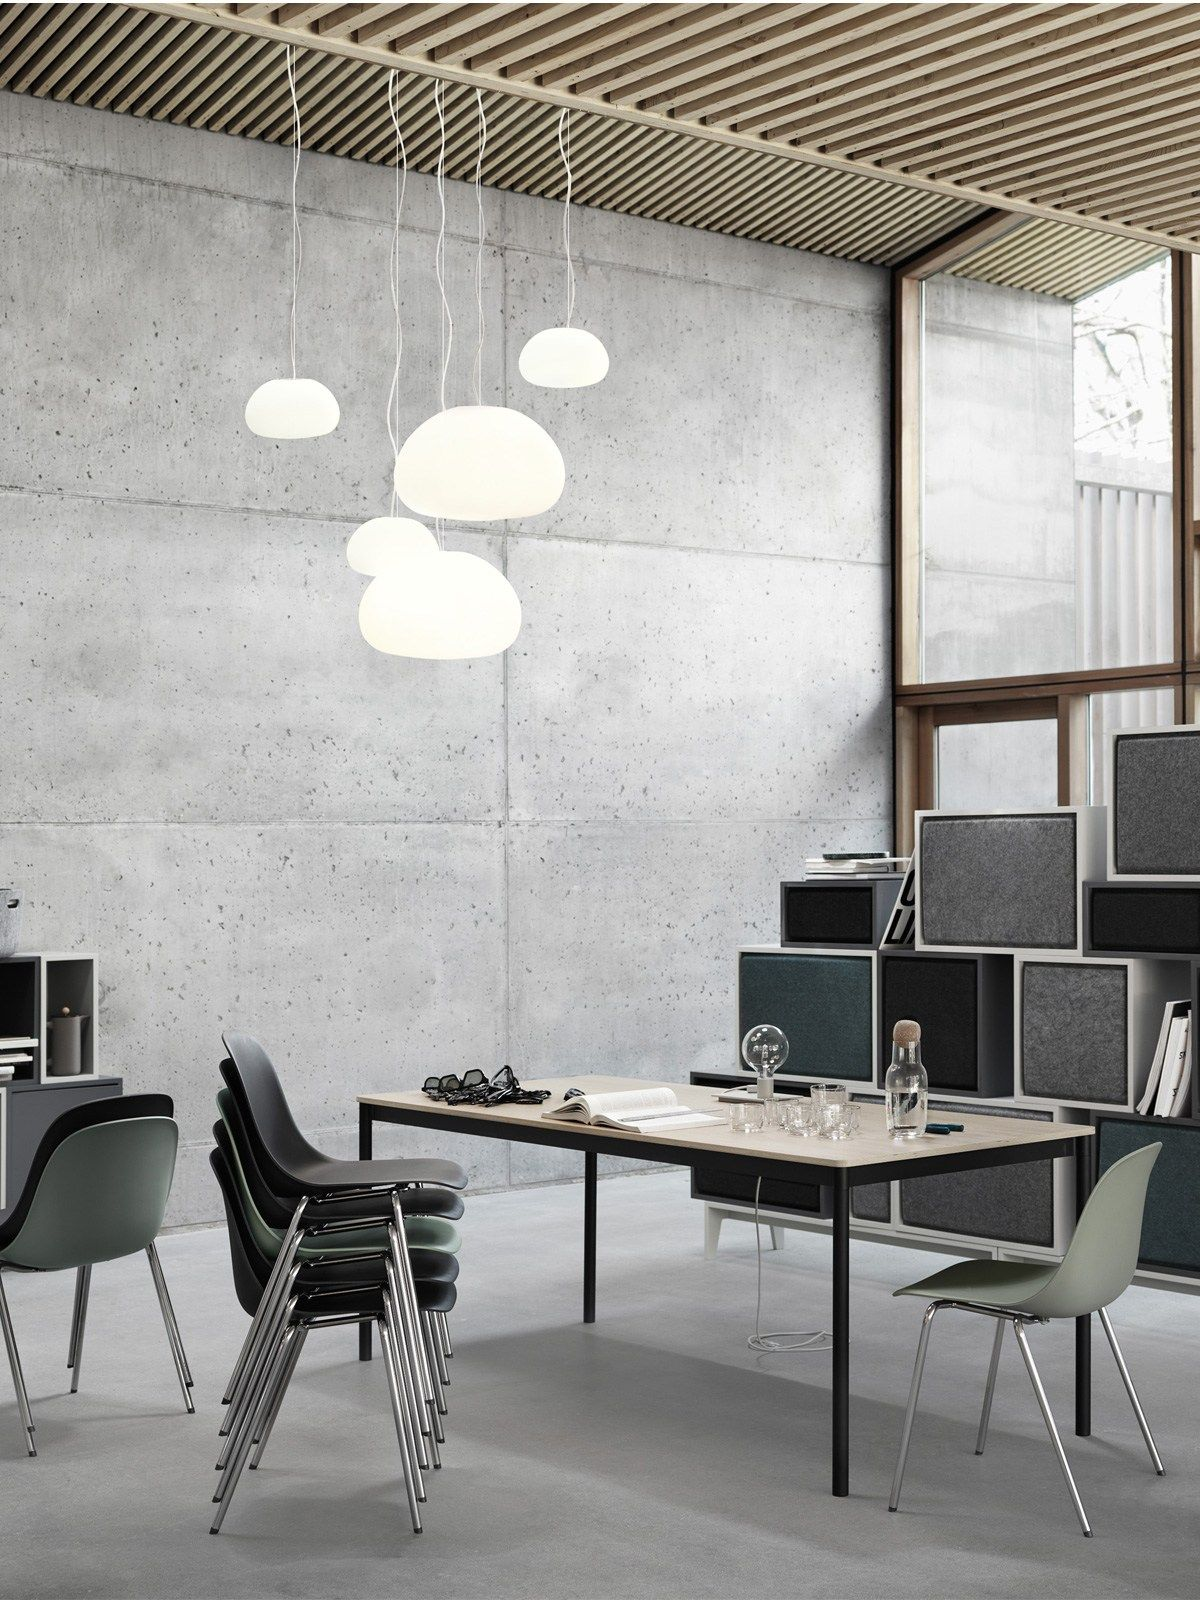 Find This Pin And More On Büro U0026 Home Office By Designortlampen.